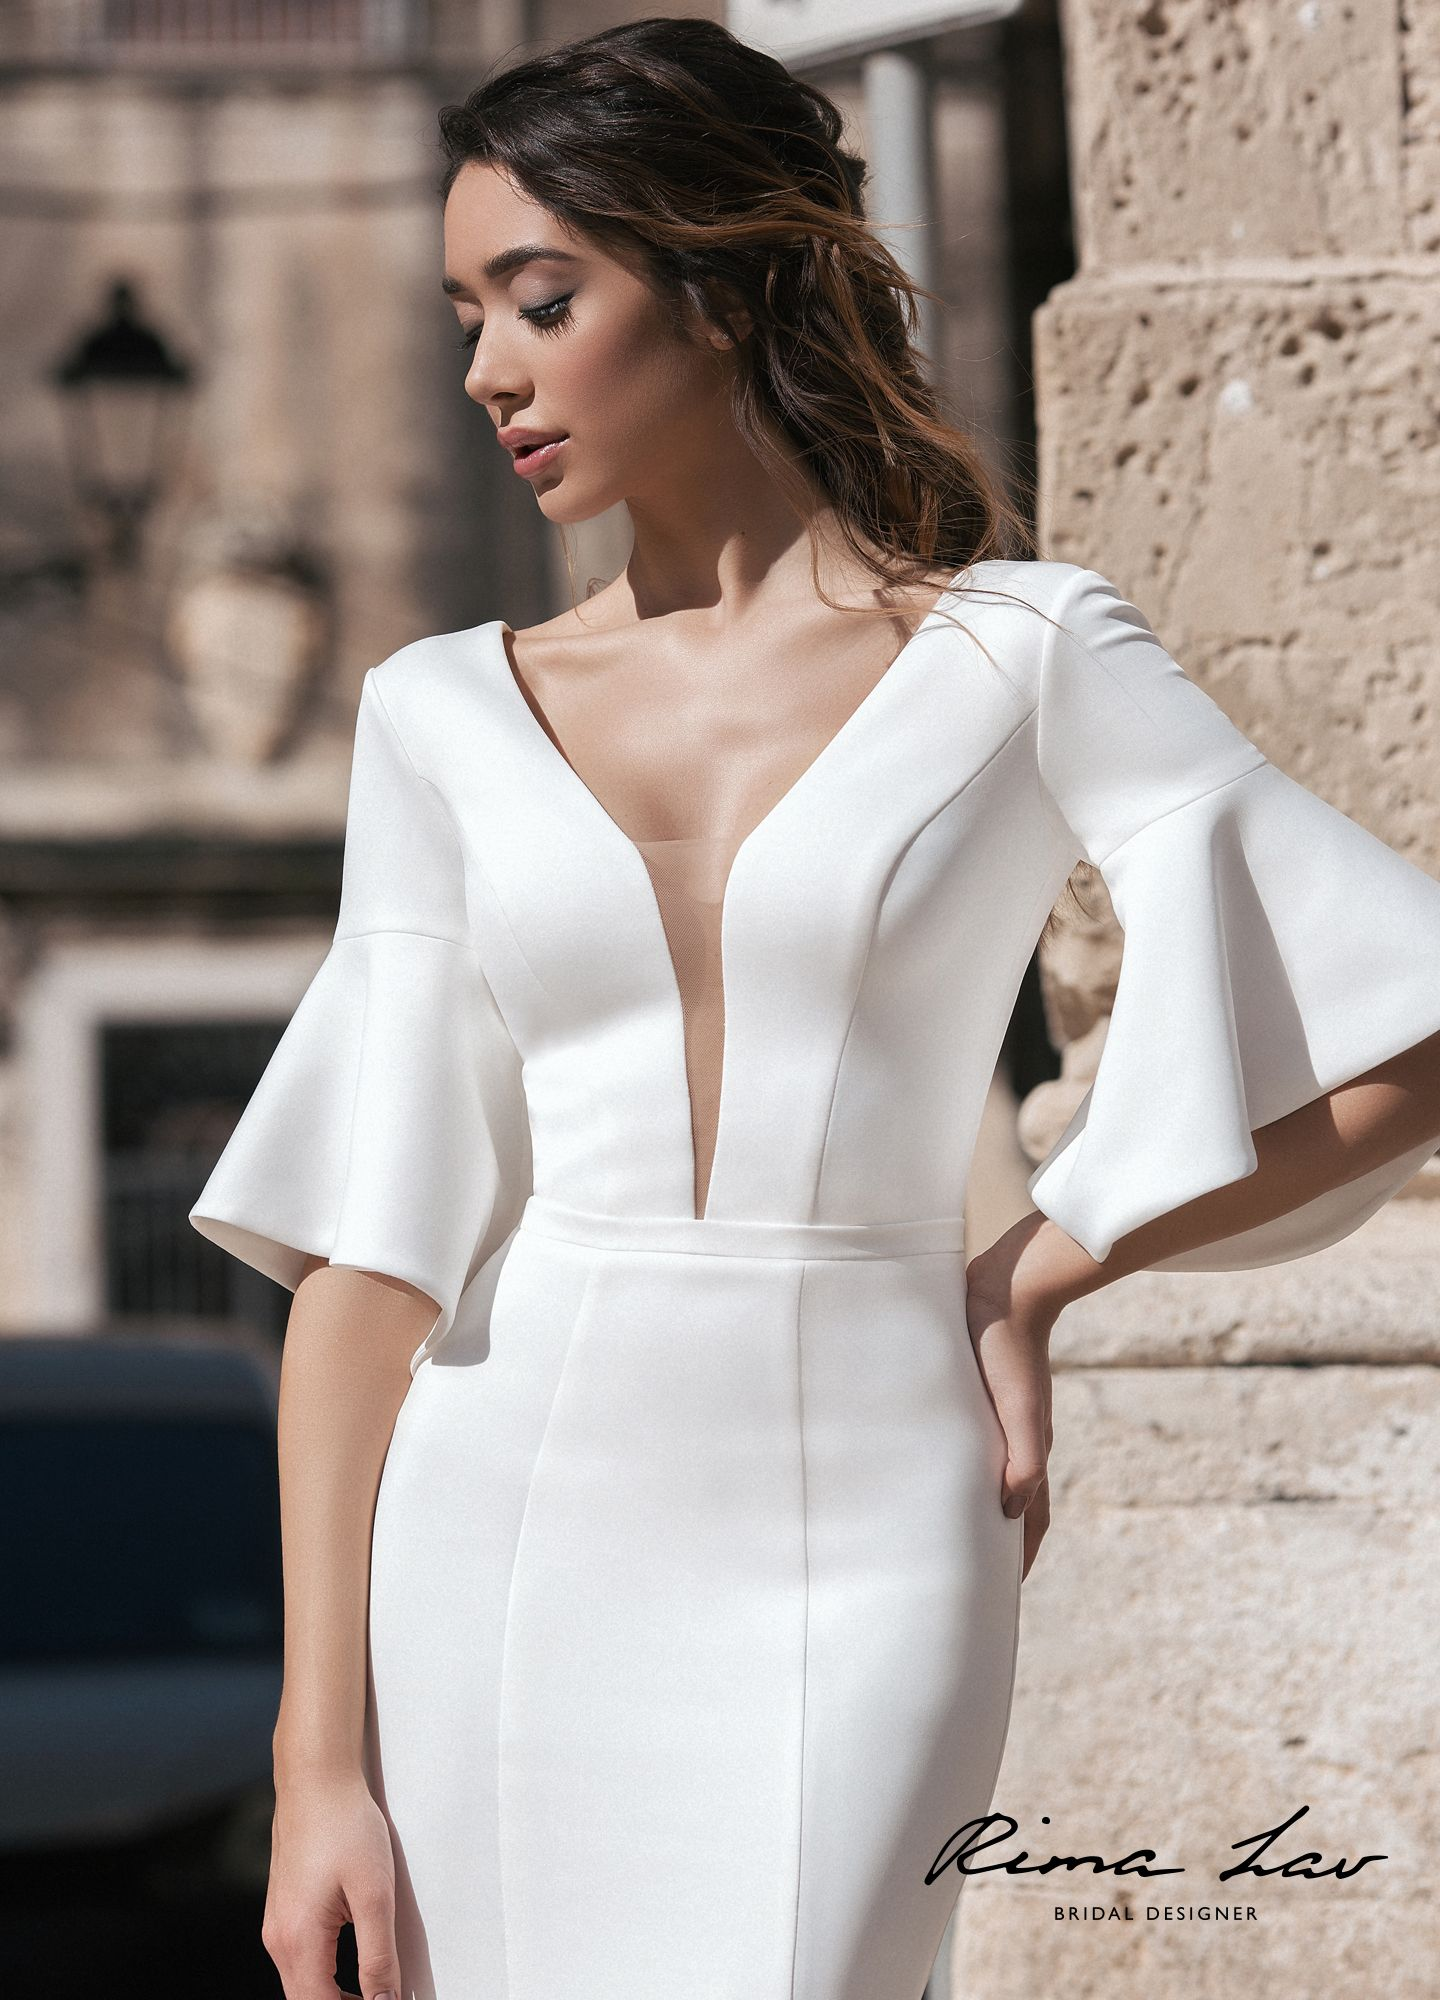 Who Designed Megan S Wedding Dress.Rima Lav Helly 3 Wedding Gown Wedding Dress With Sleeves Long